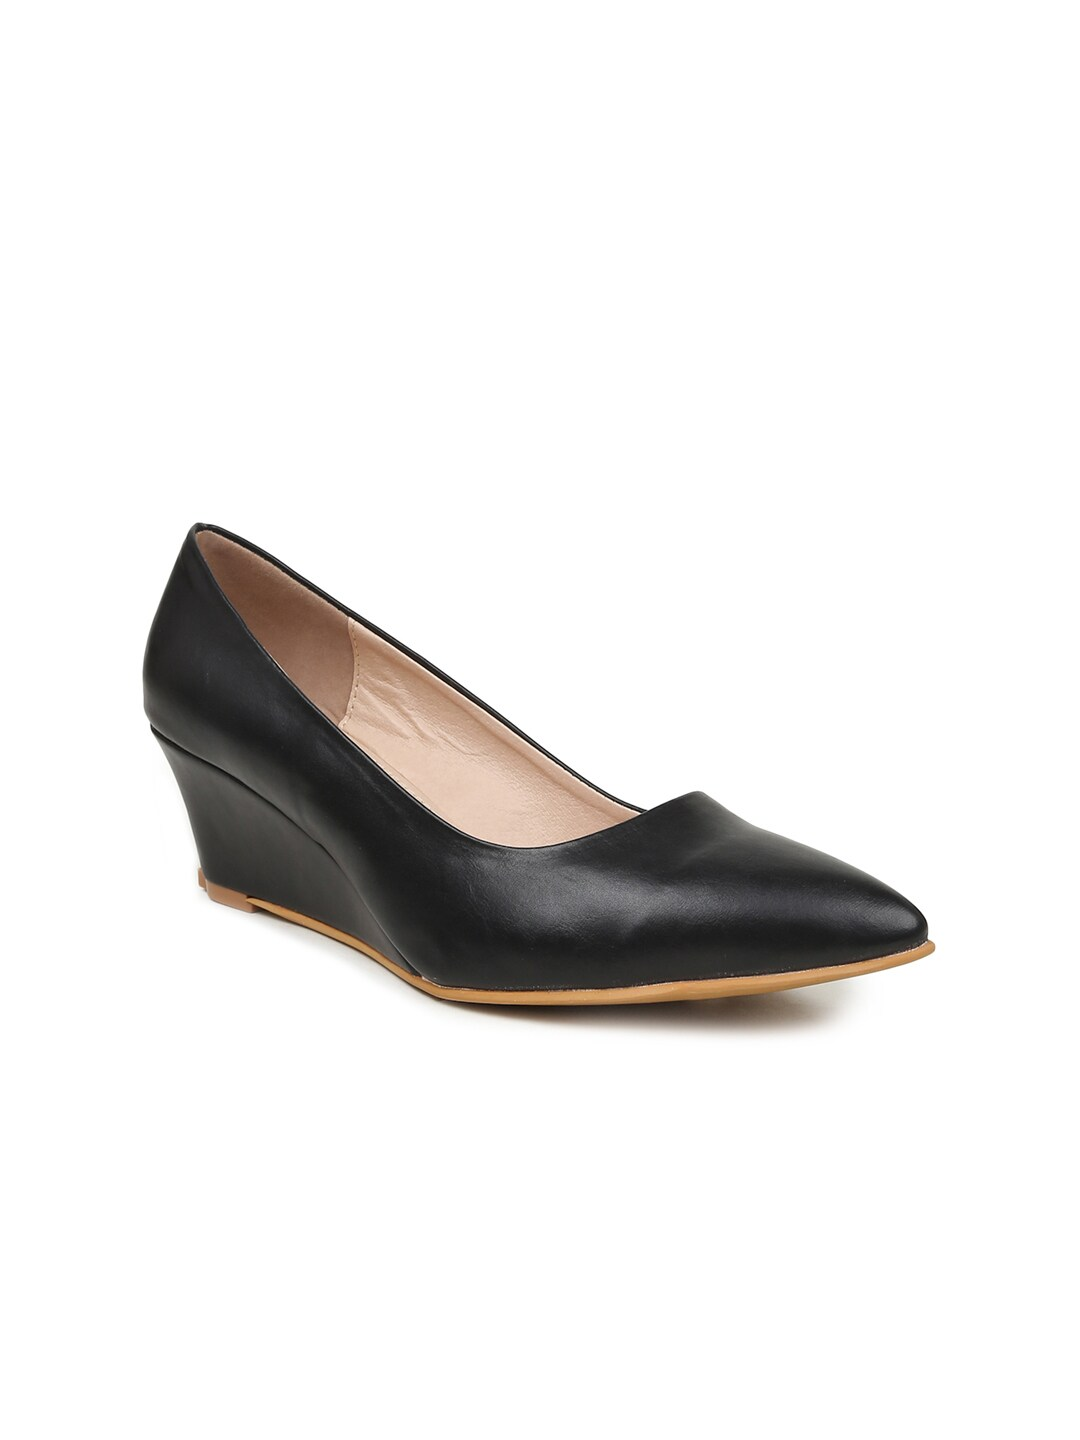 793f436f4fa Women Shoes - Buy Shoes for Women online in India